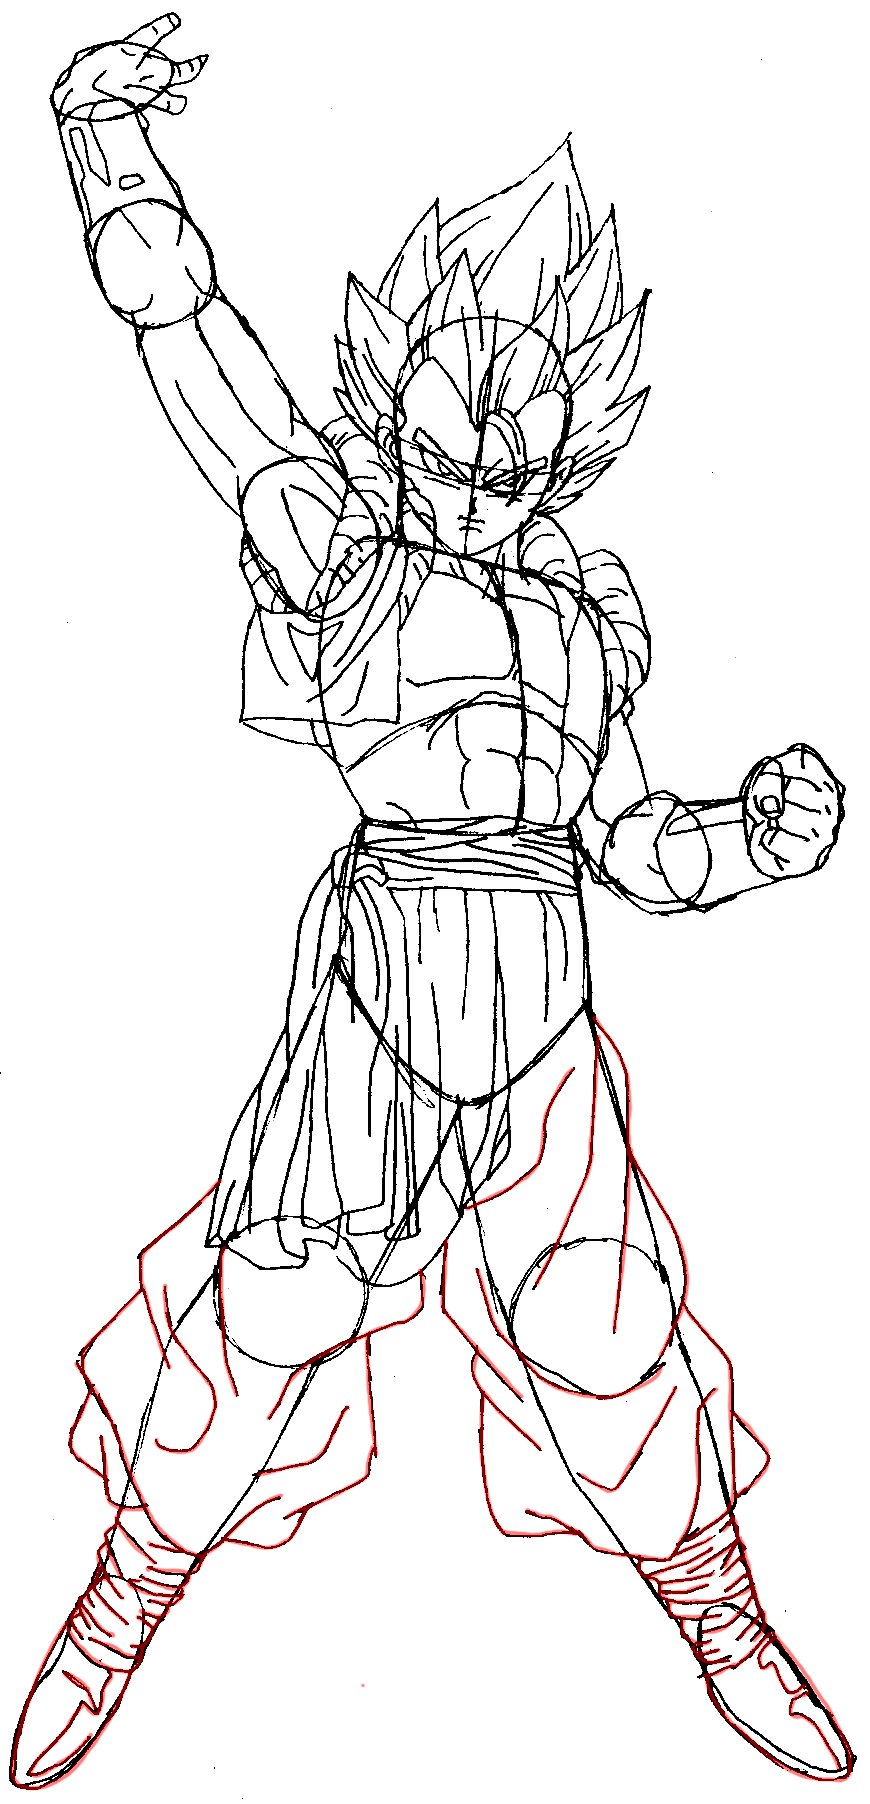 870x1804 How To Draw Gogeta From Dragon Ball Z In Easy Steps Tutorial How